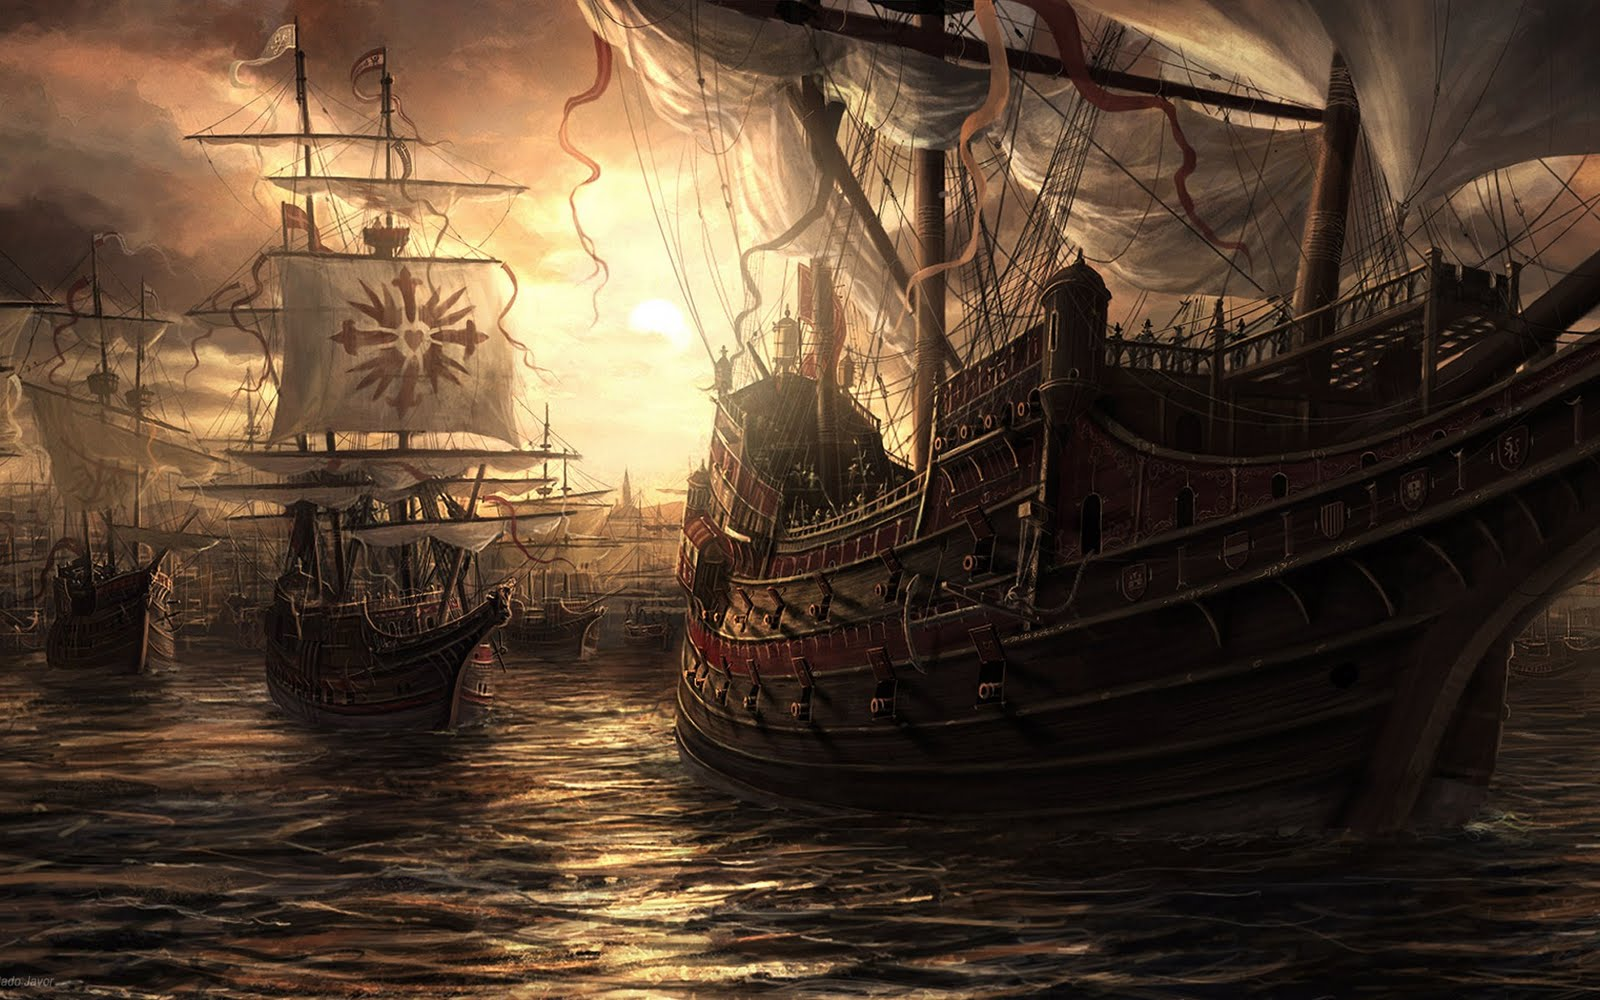 Free Download October 7 2014 At 1600 1000 In Pirate Ship Hd